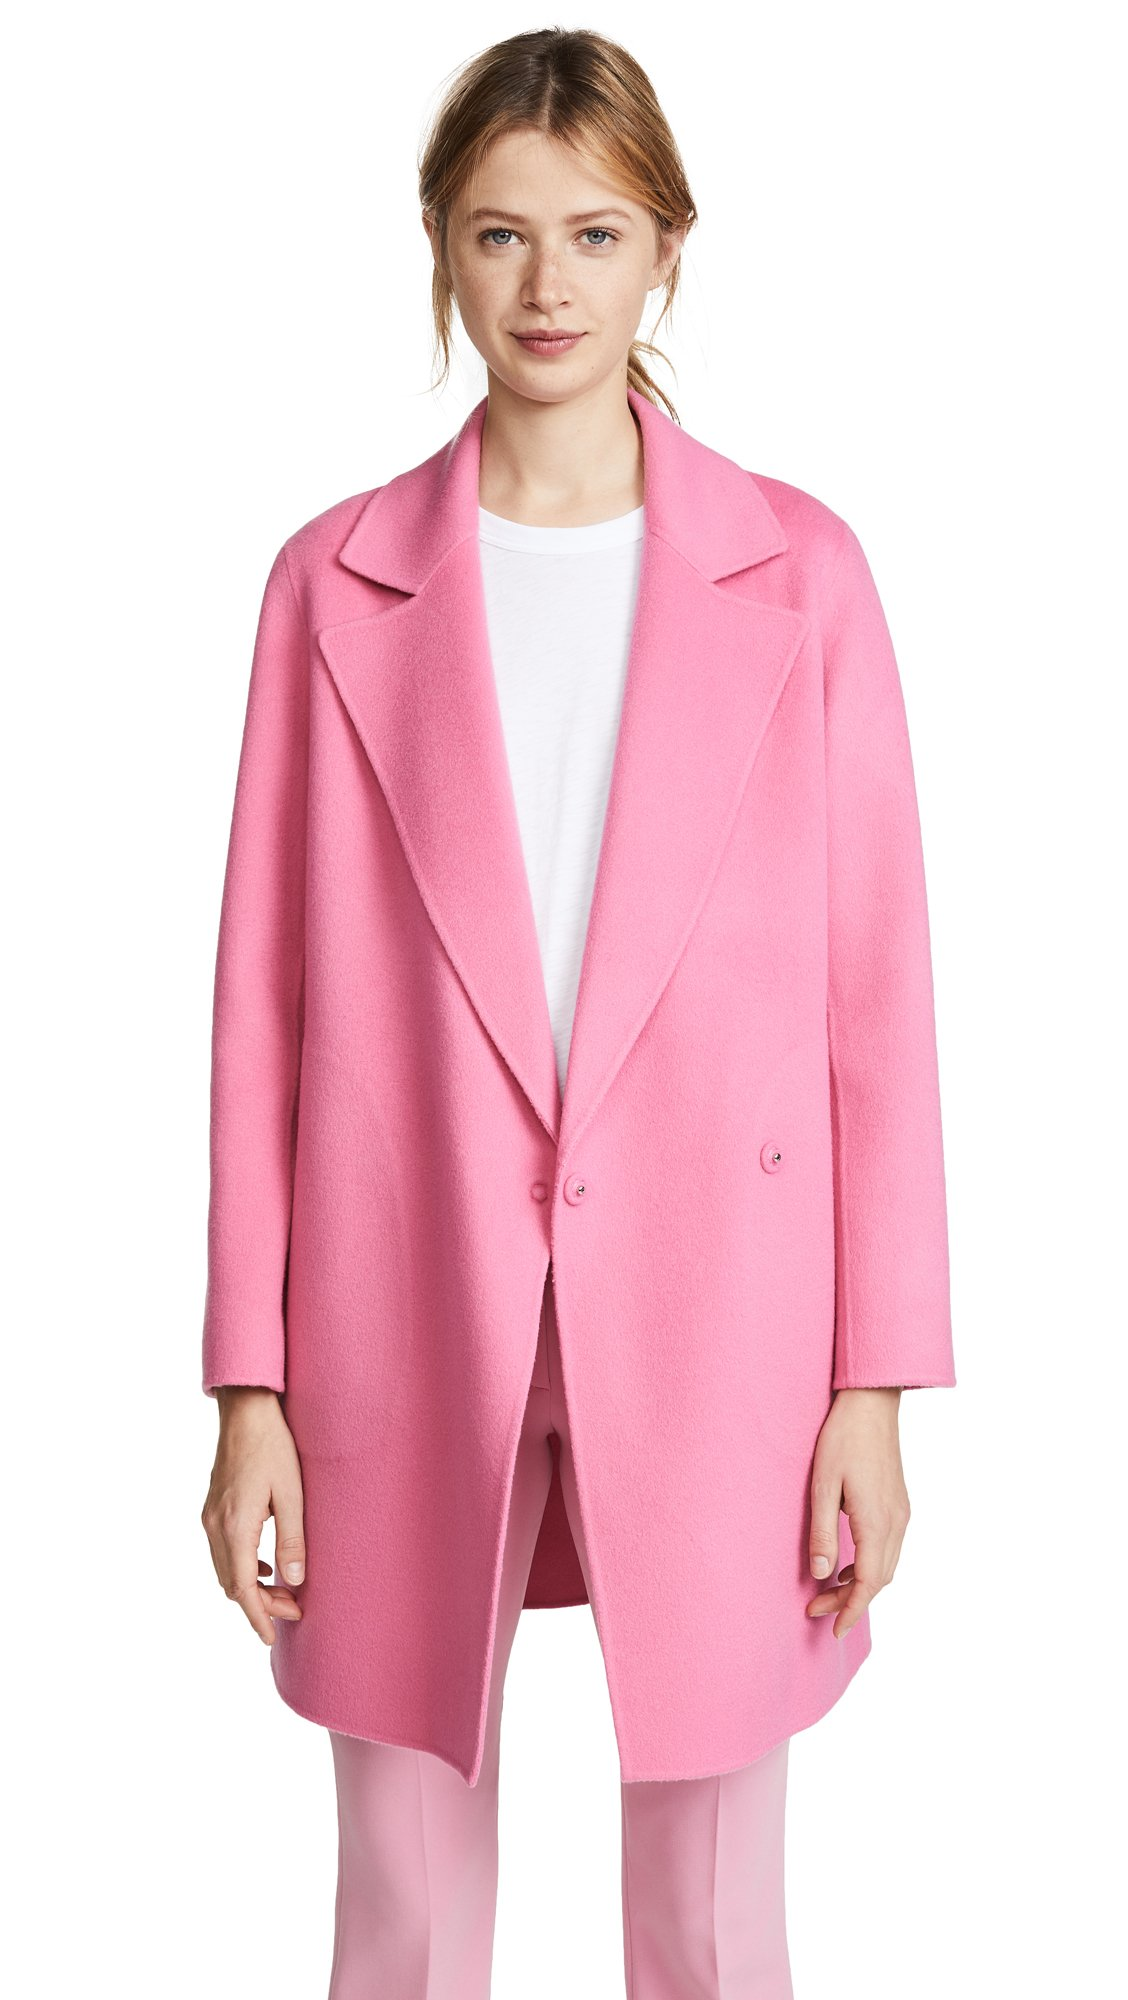 Theory Women's Boy Coat, Orchid Pink, S